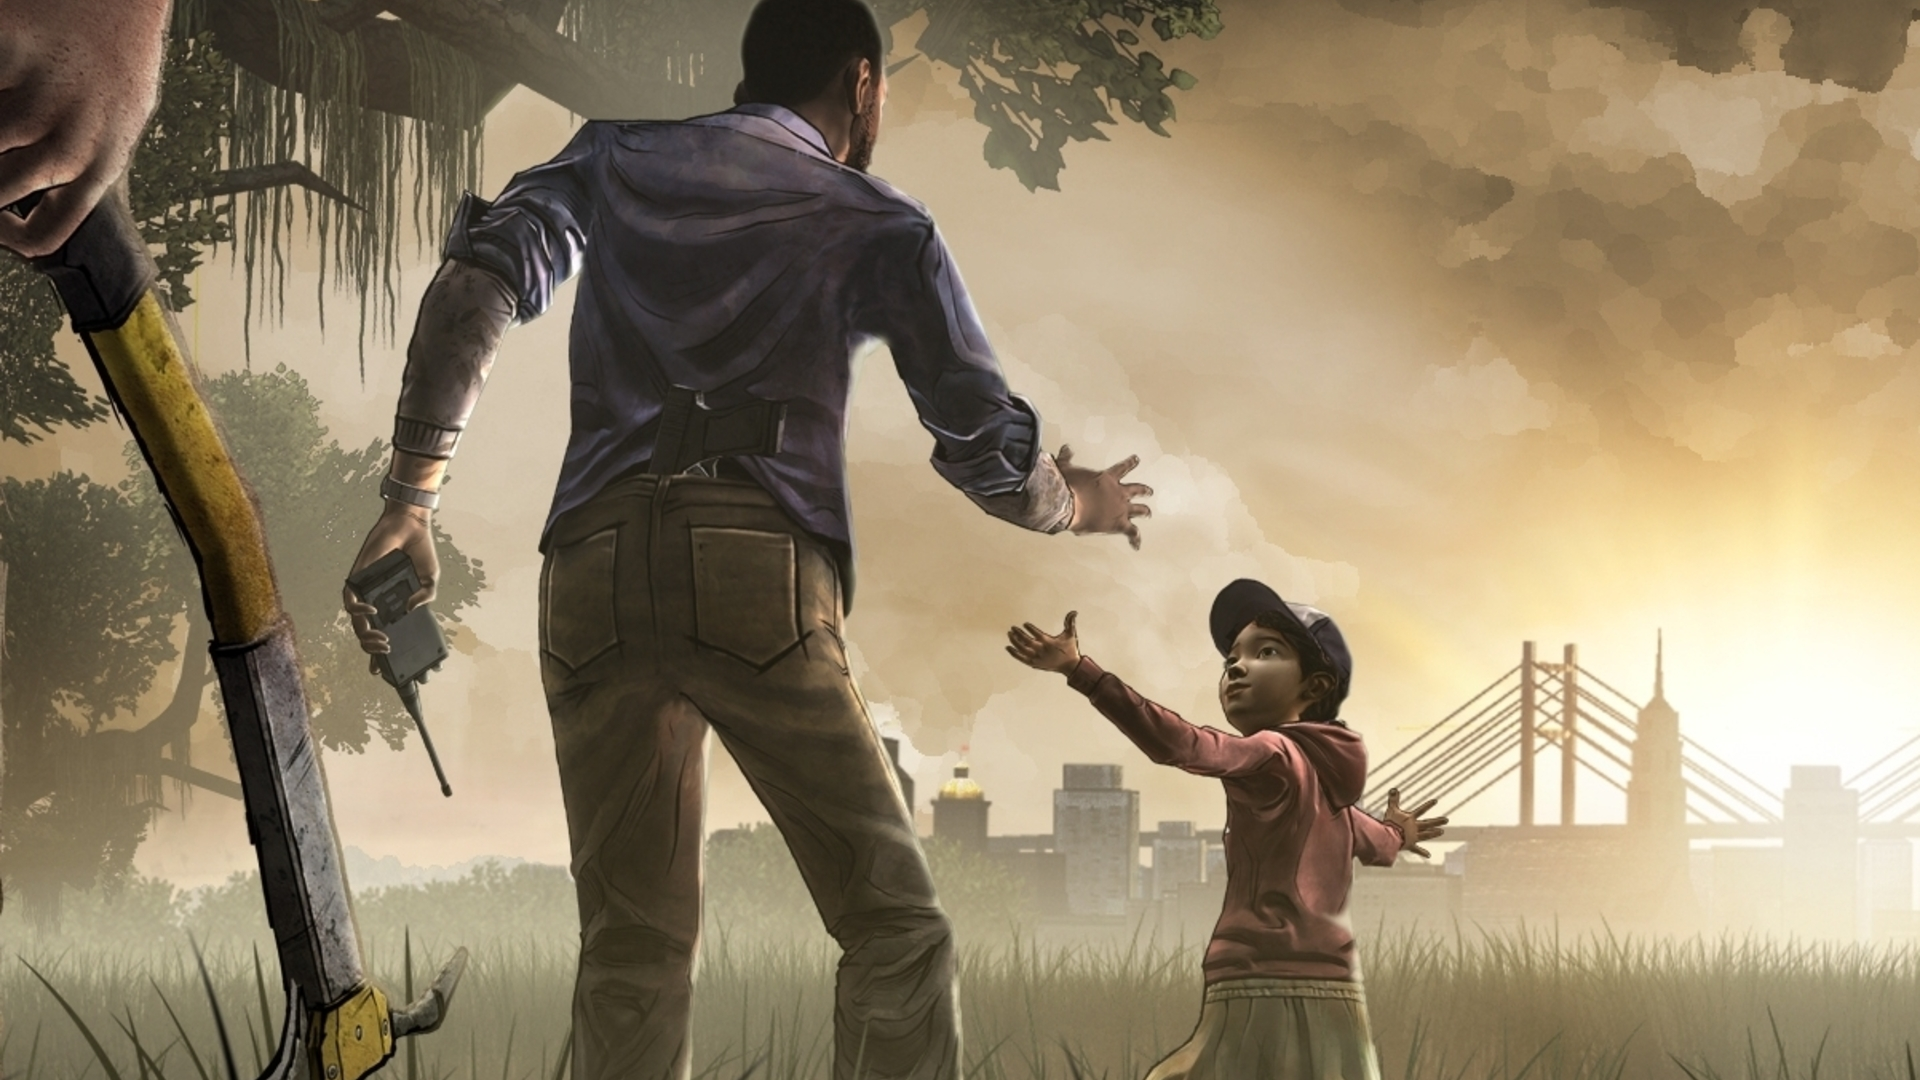 Telltale Games releases new The Walking Dead teaser